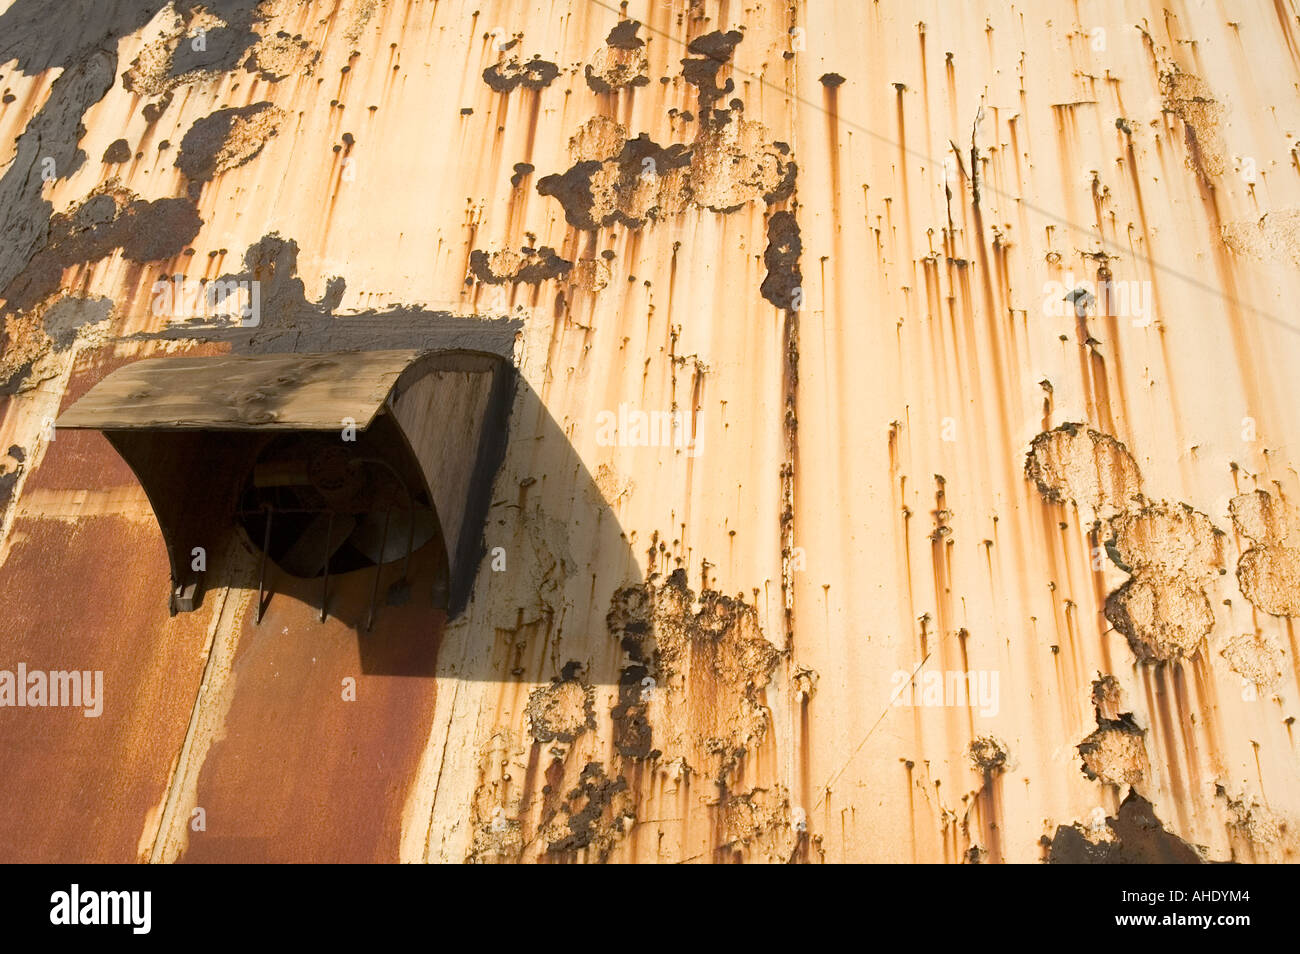 Wall Vent Stock Photos & Wall Vent Stock Images - Alamy